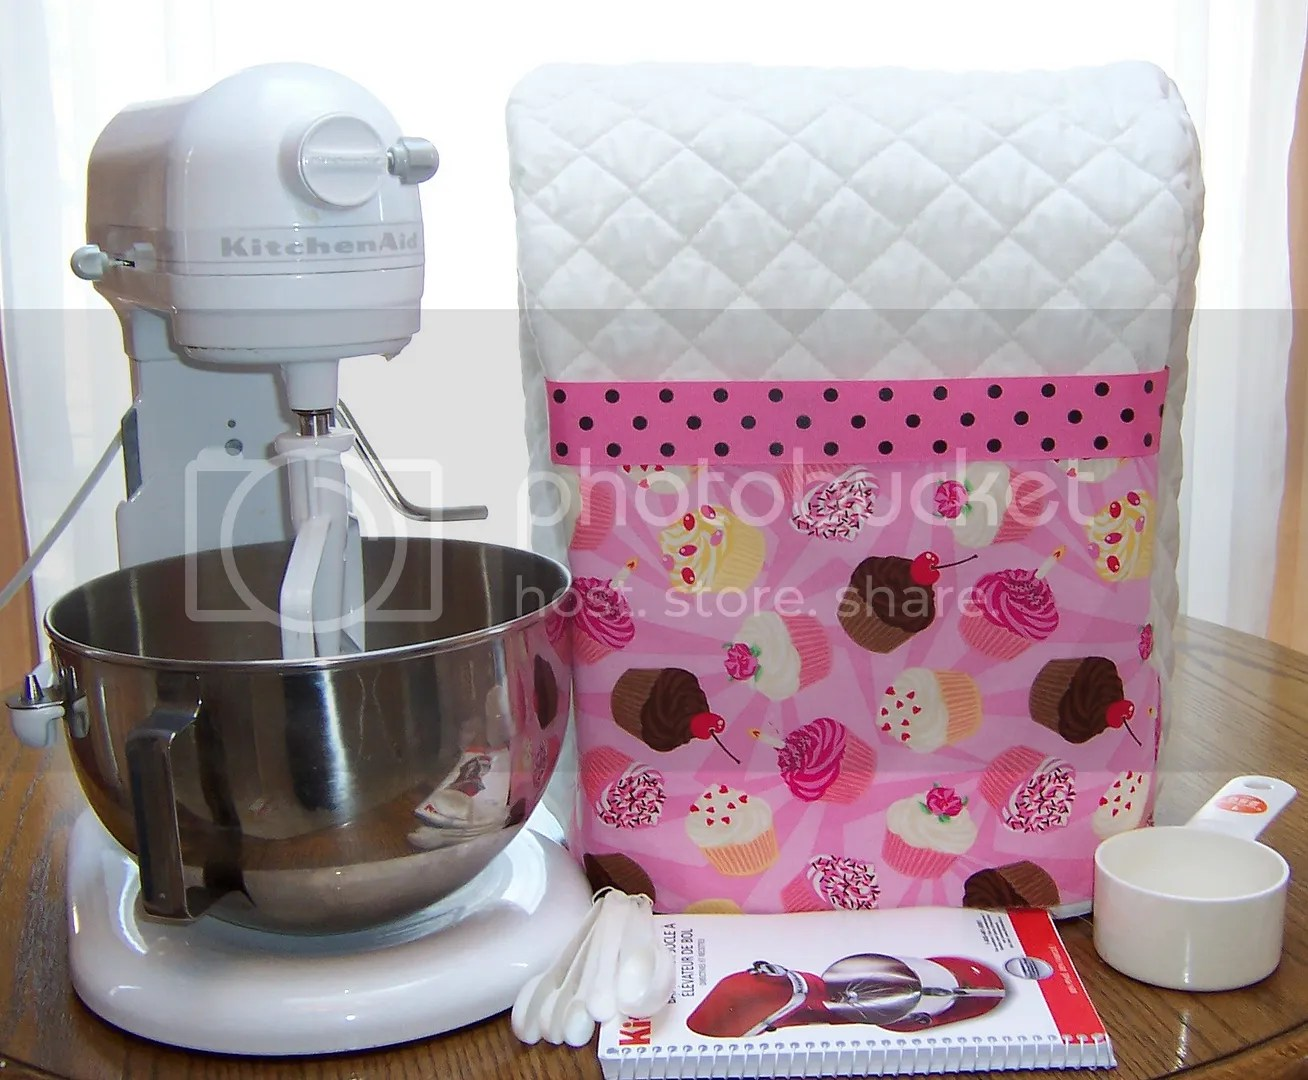 kitchen aid mixer cover wine bottle themed decor white quilted cake cupcakes pocket